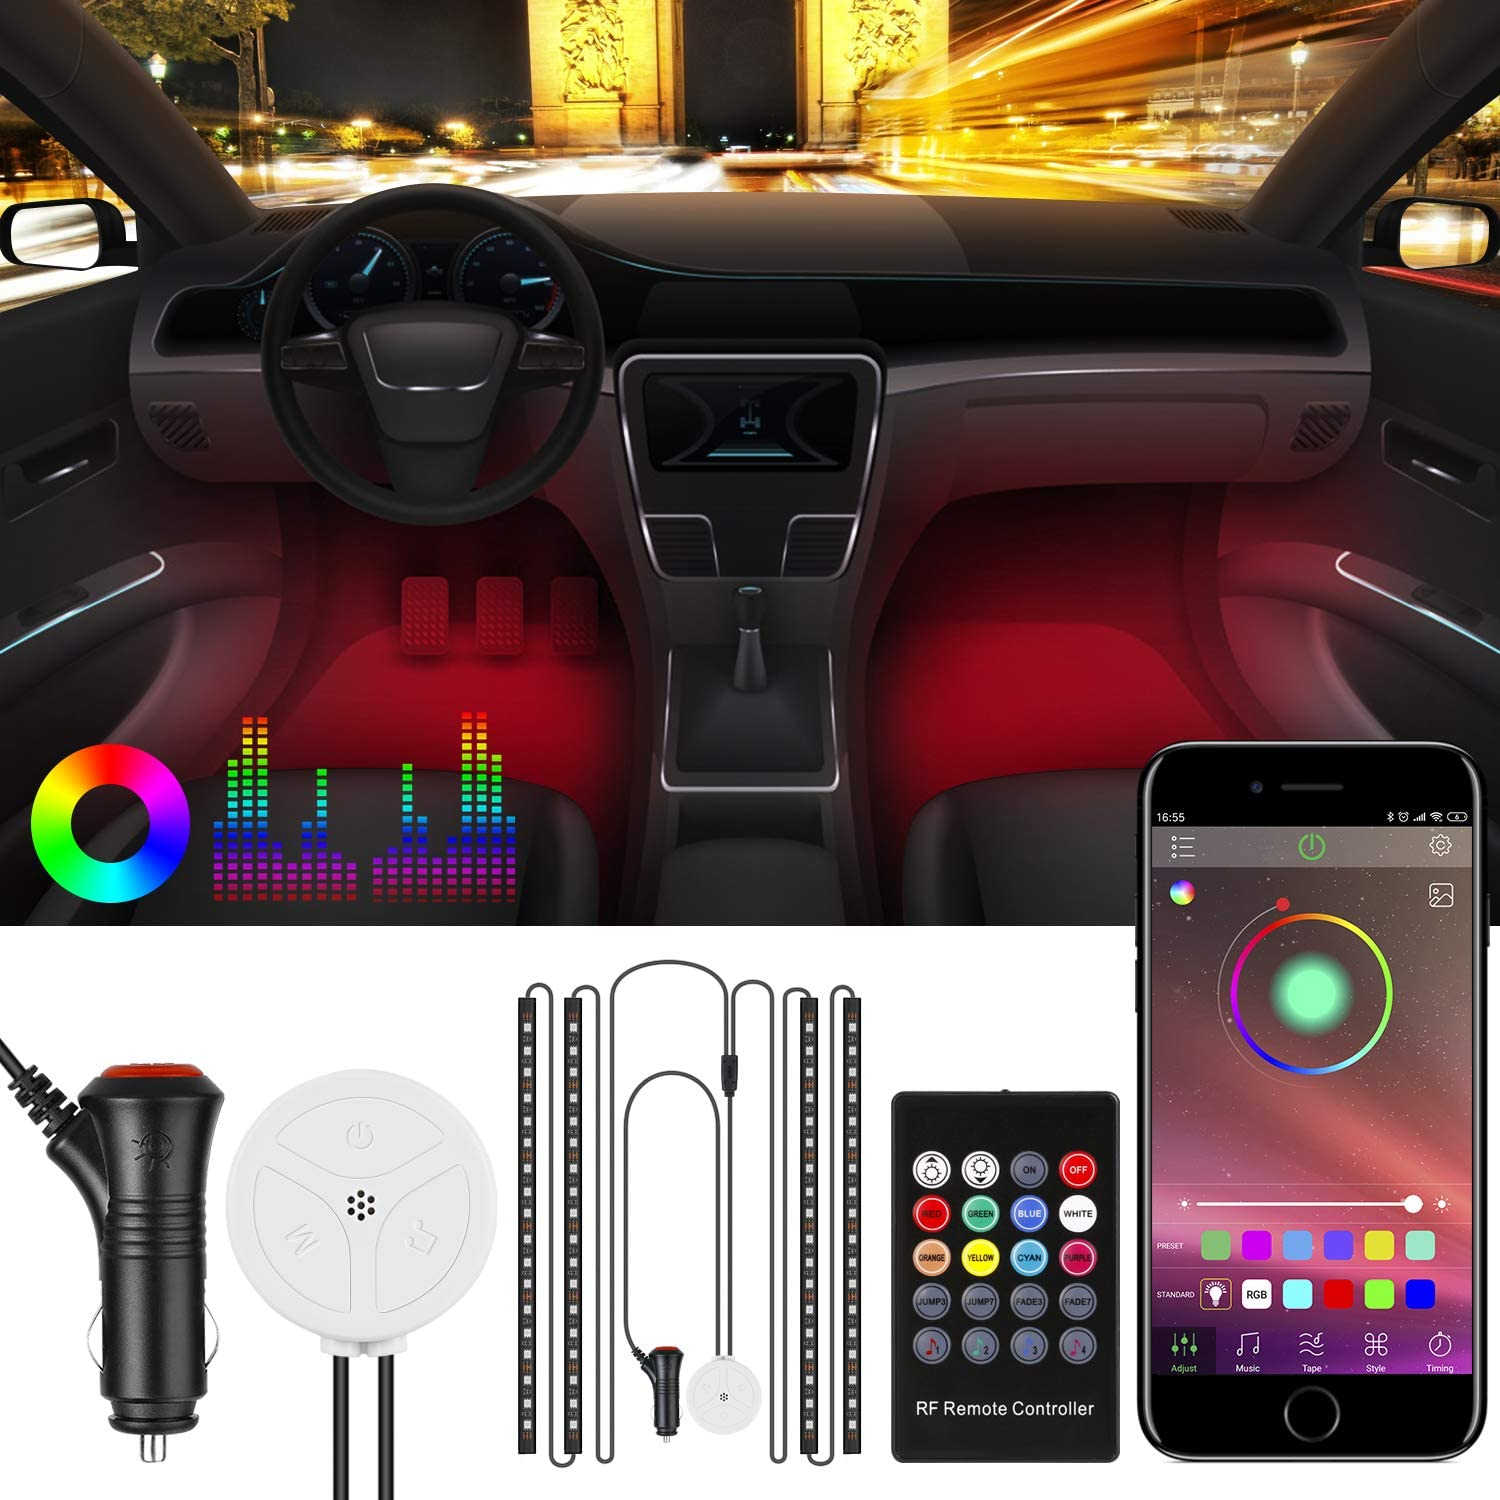 Energieklasse A+ Syn mit Musik 4pcs 72 LED Auto LED Strip BodyCode RGB Auto Innenraumbeleuchtung mit APP und Fernbedienung Auto LED Innenbeleuchtung